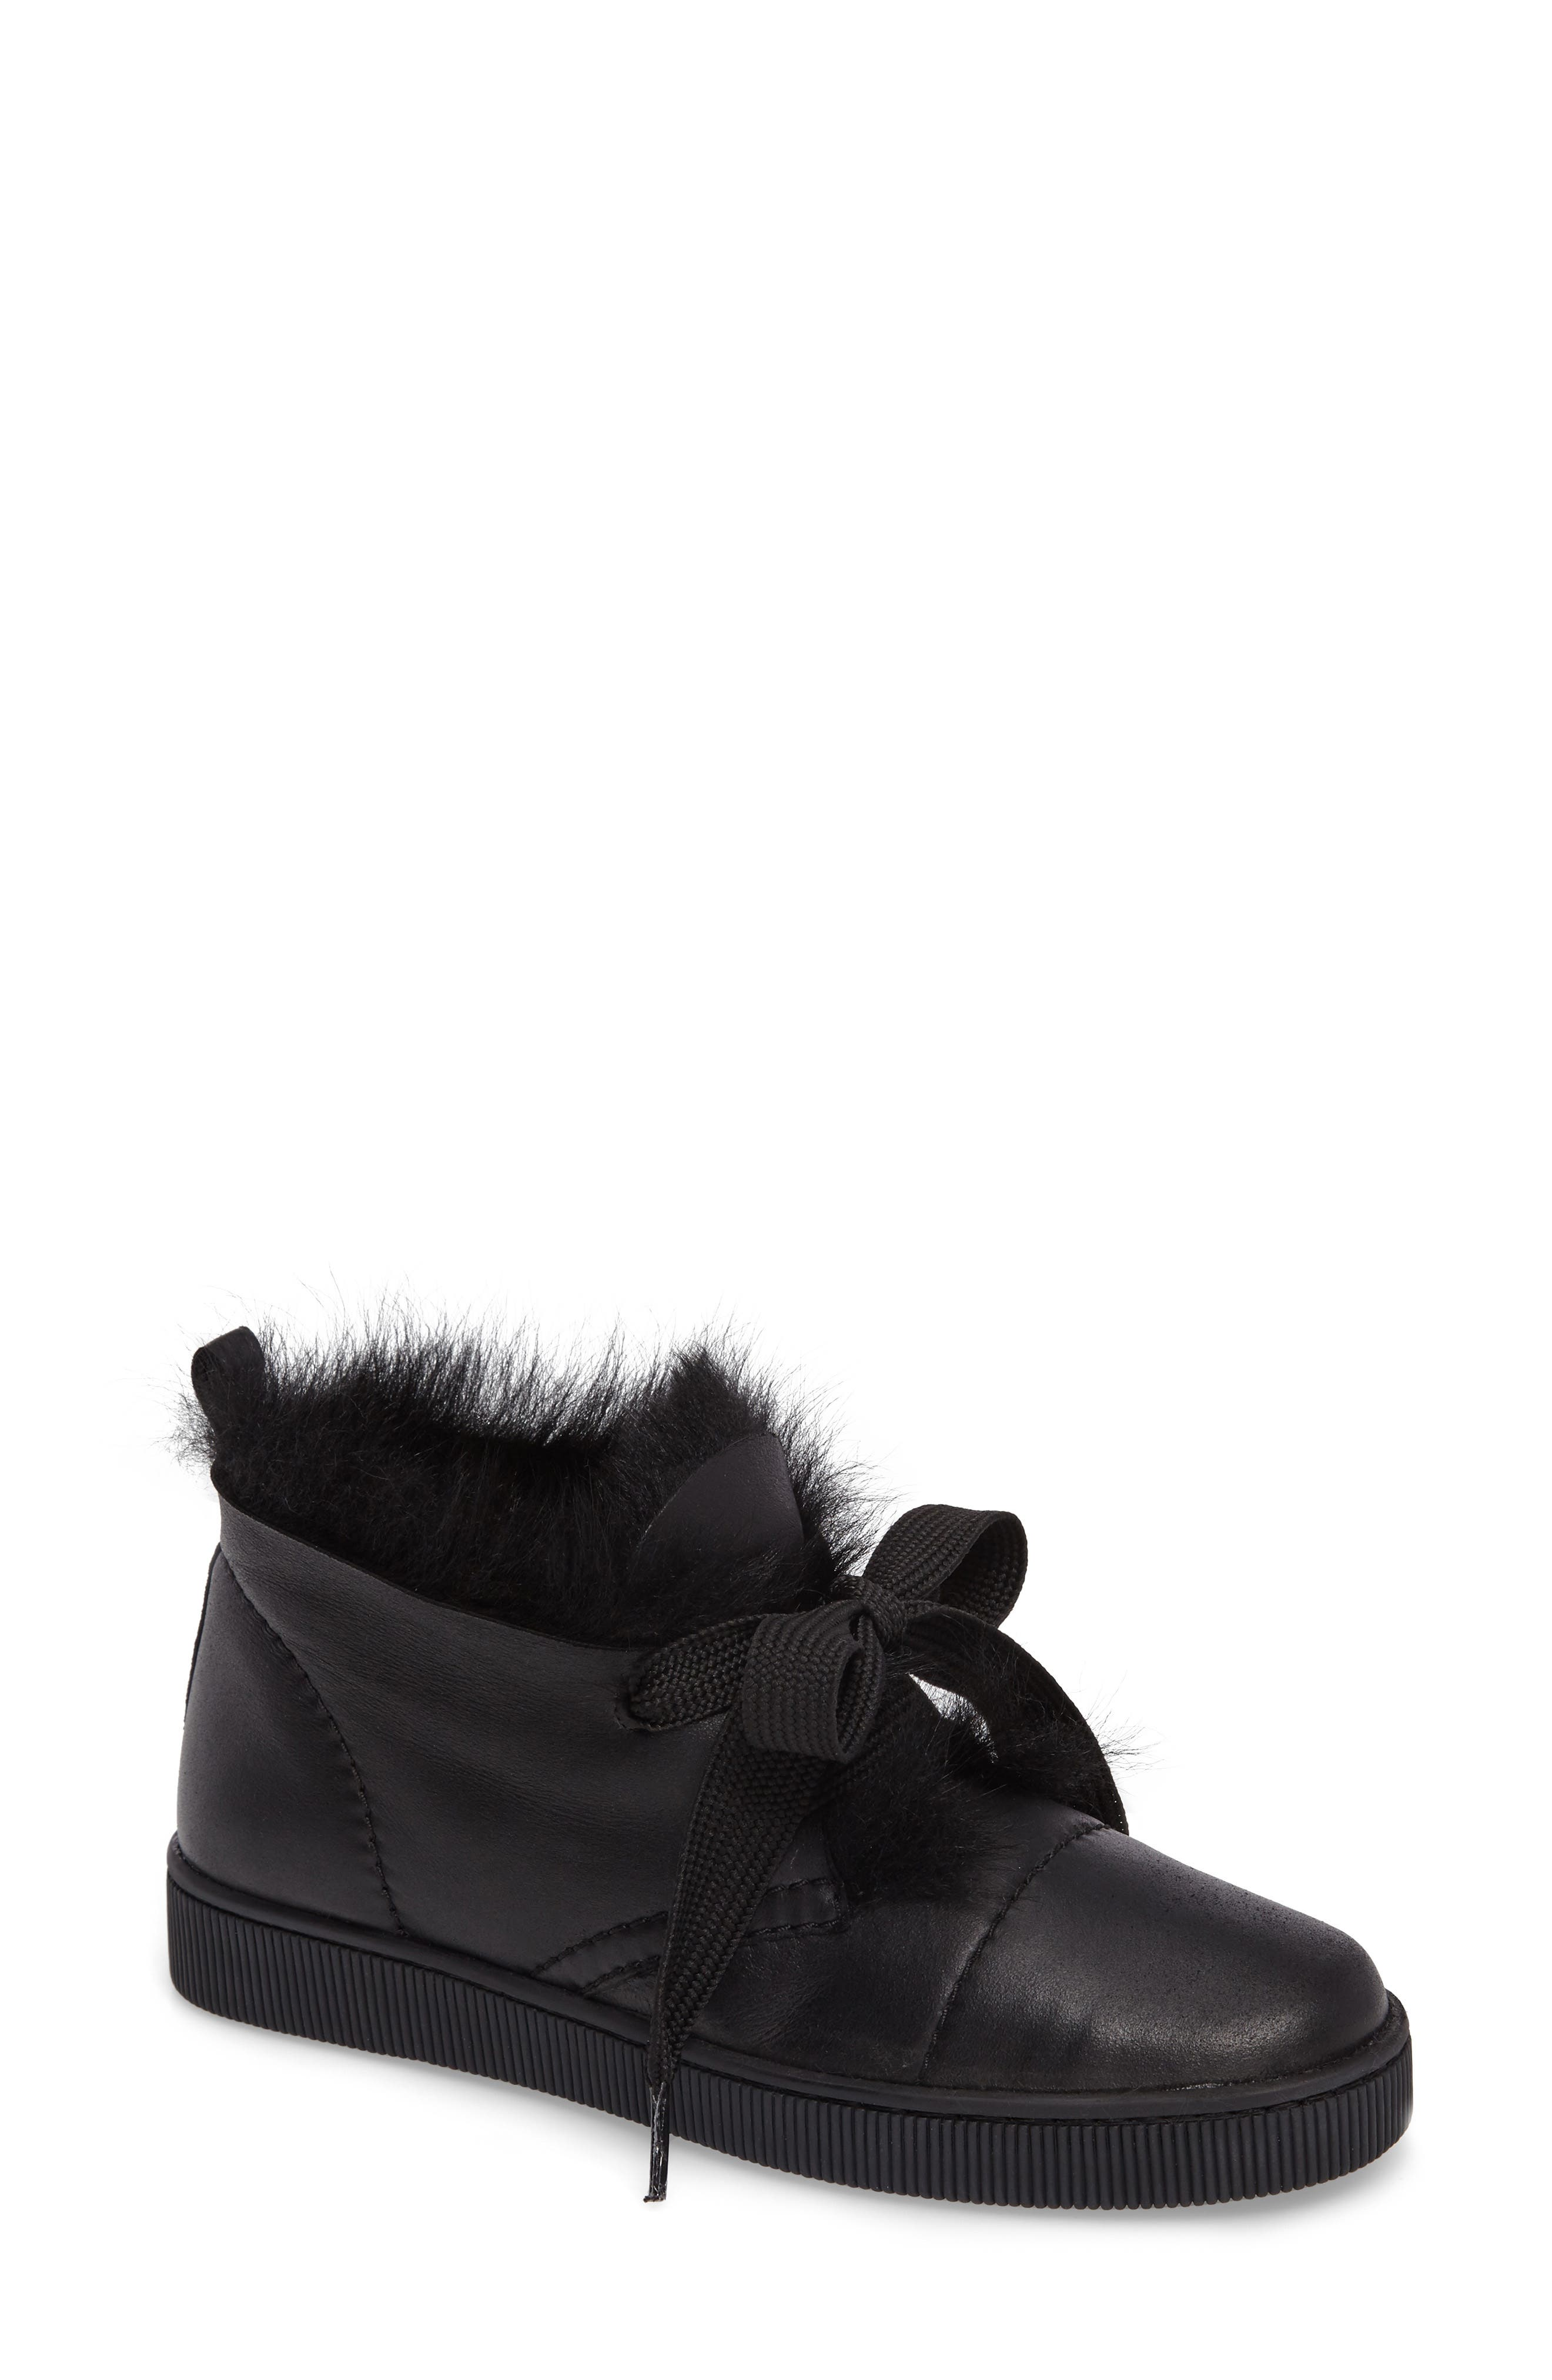 Alternate Image 1 Selected - Pedro Garcia Parley Genuine Shearling & Leather Sneaker (Women)